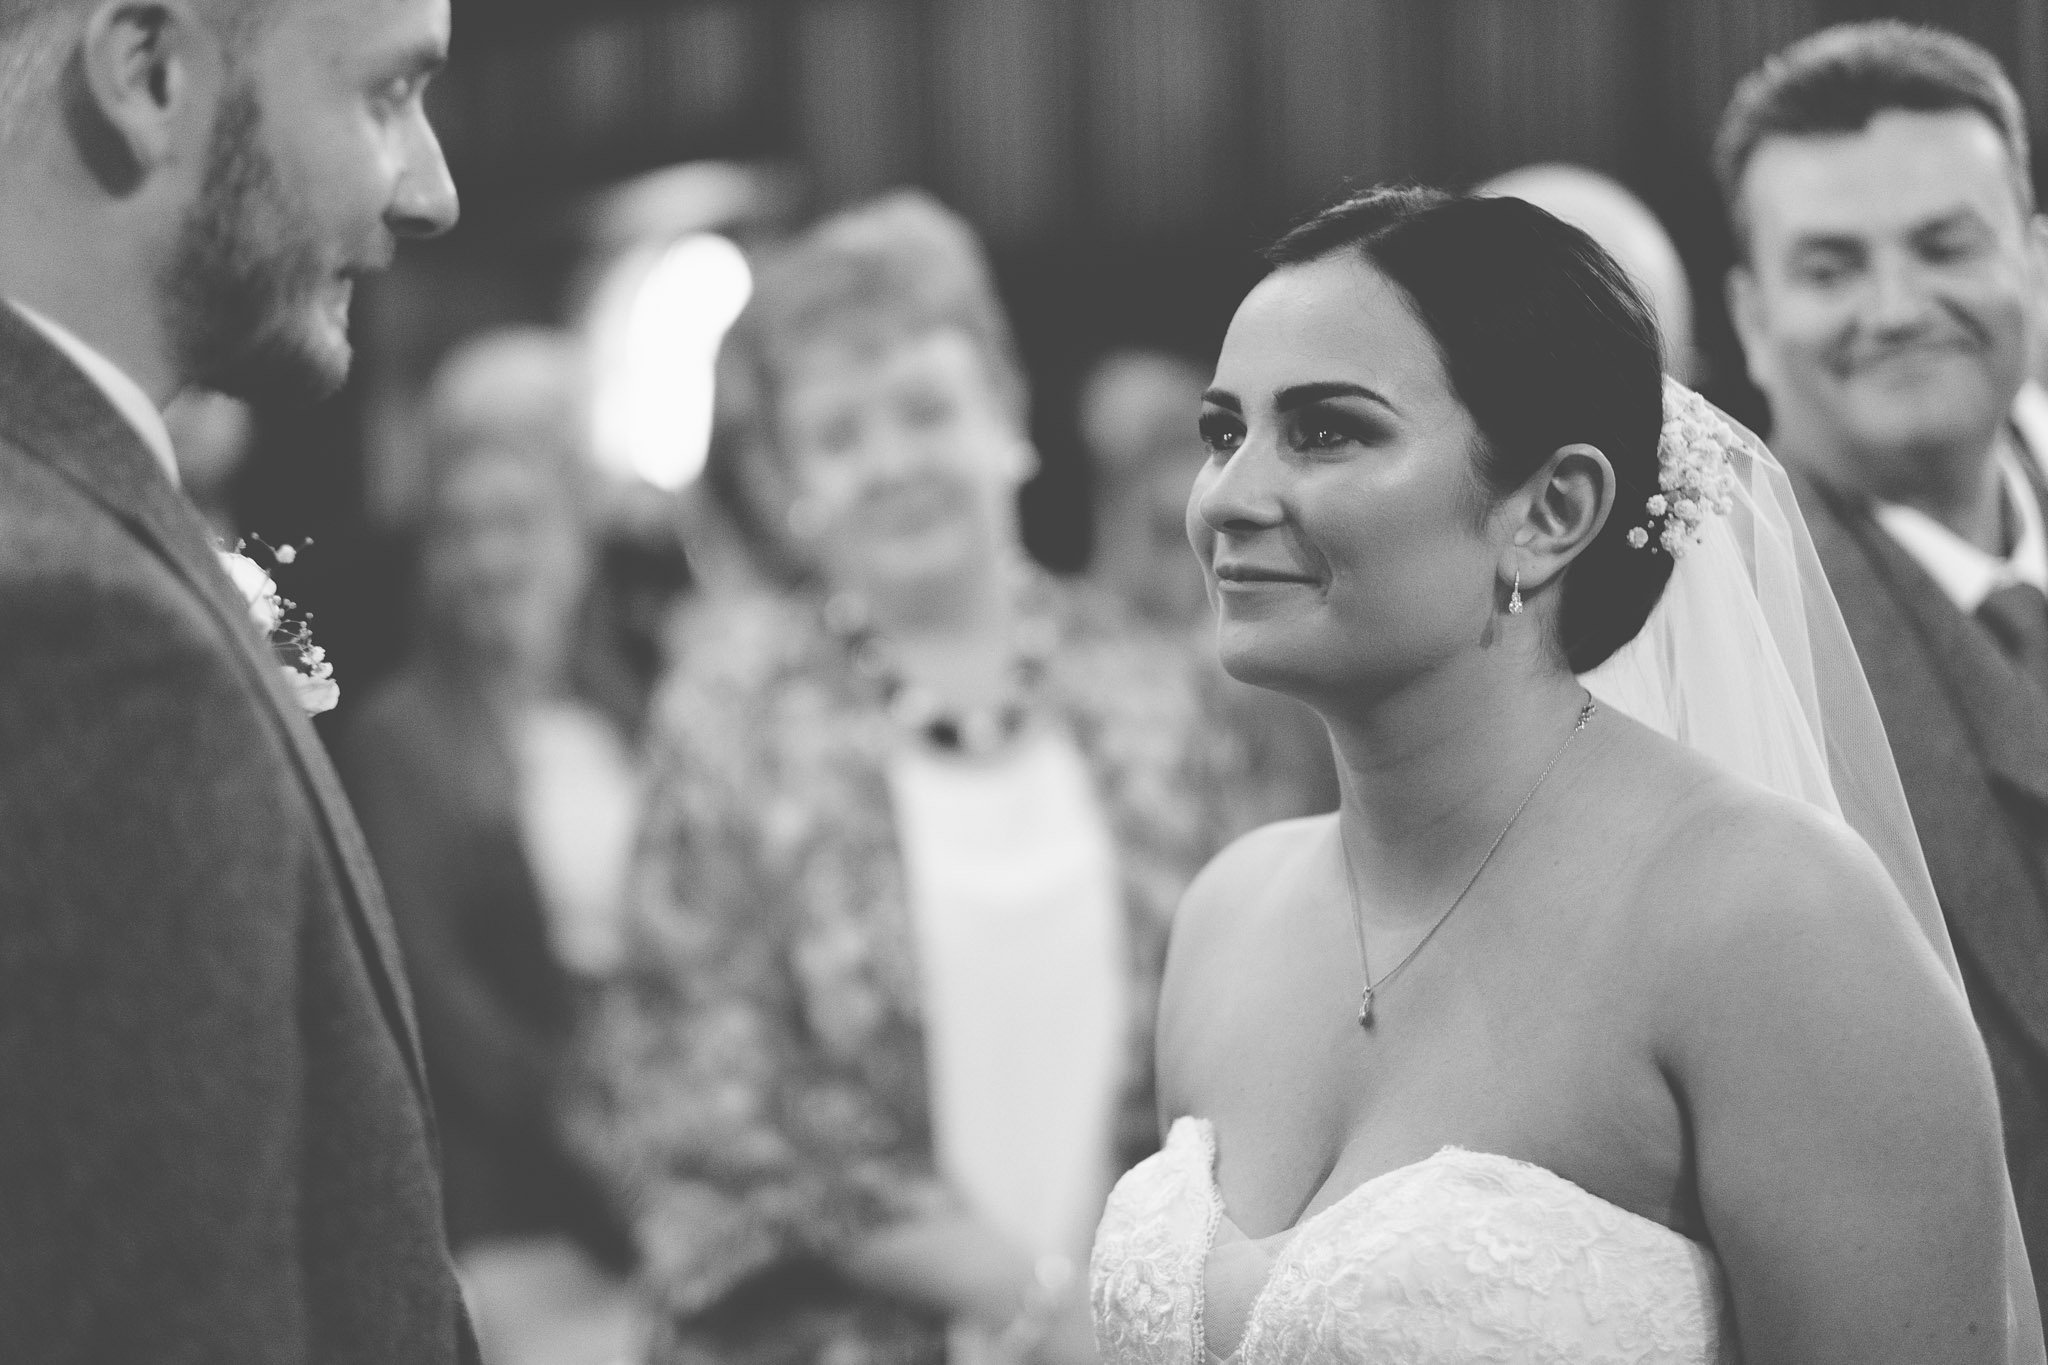 Bride and groom looking at each other during ceremony at Leez Priory wedding